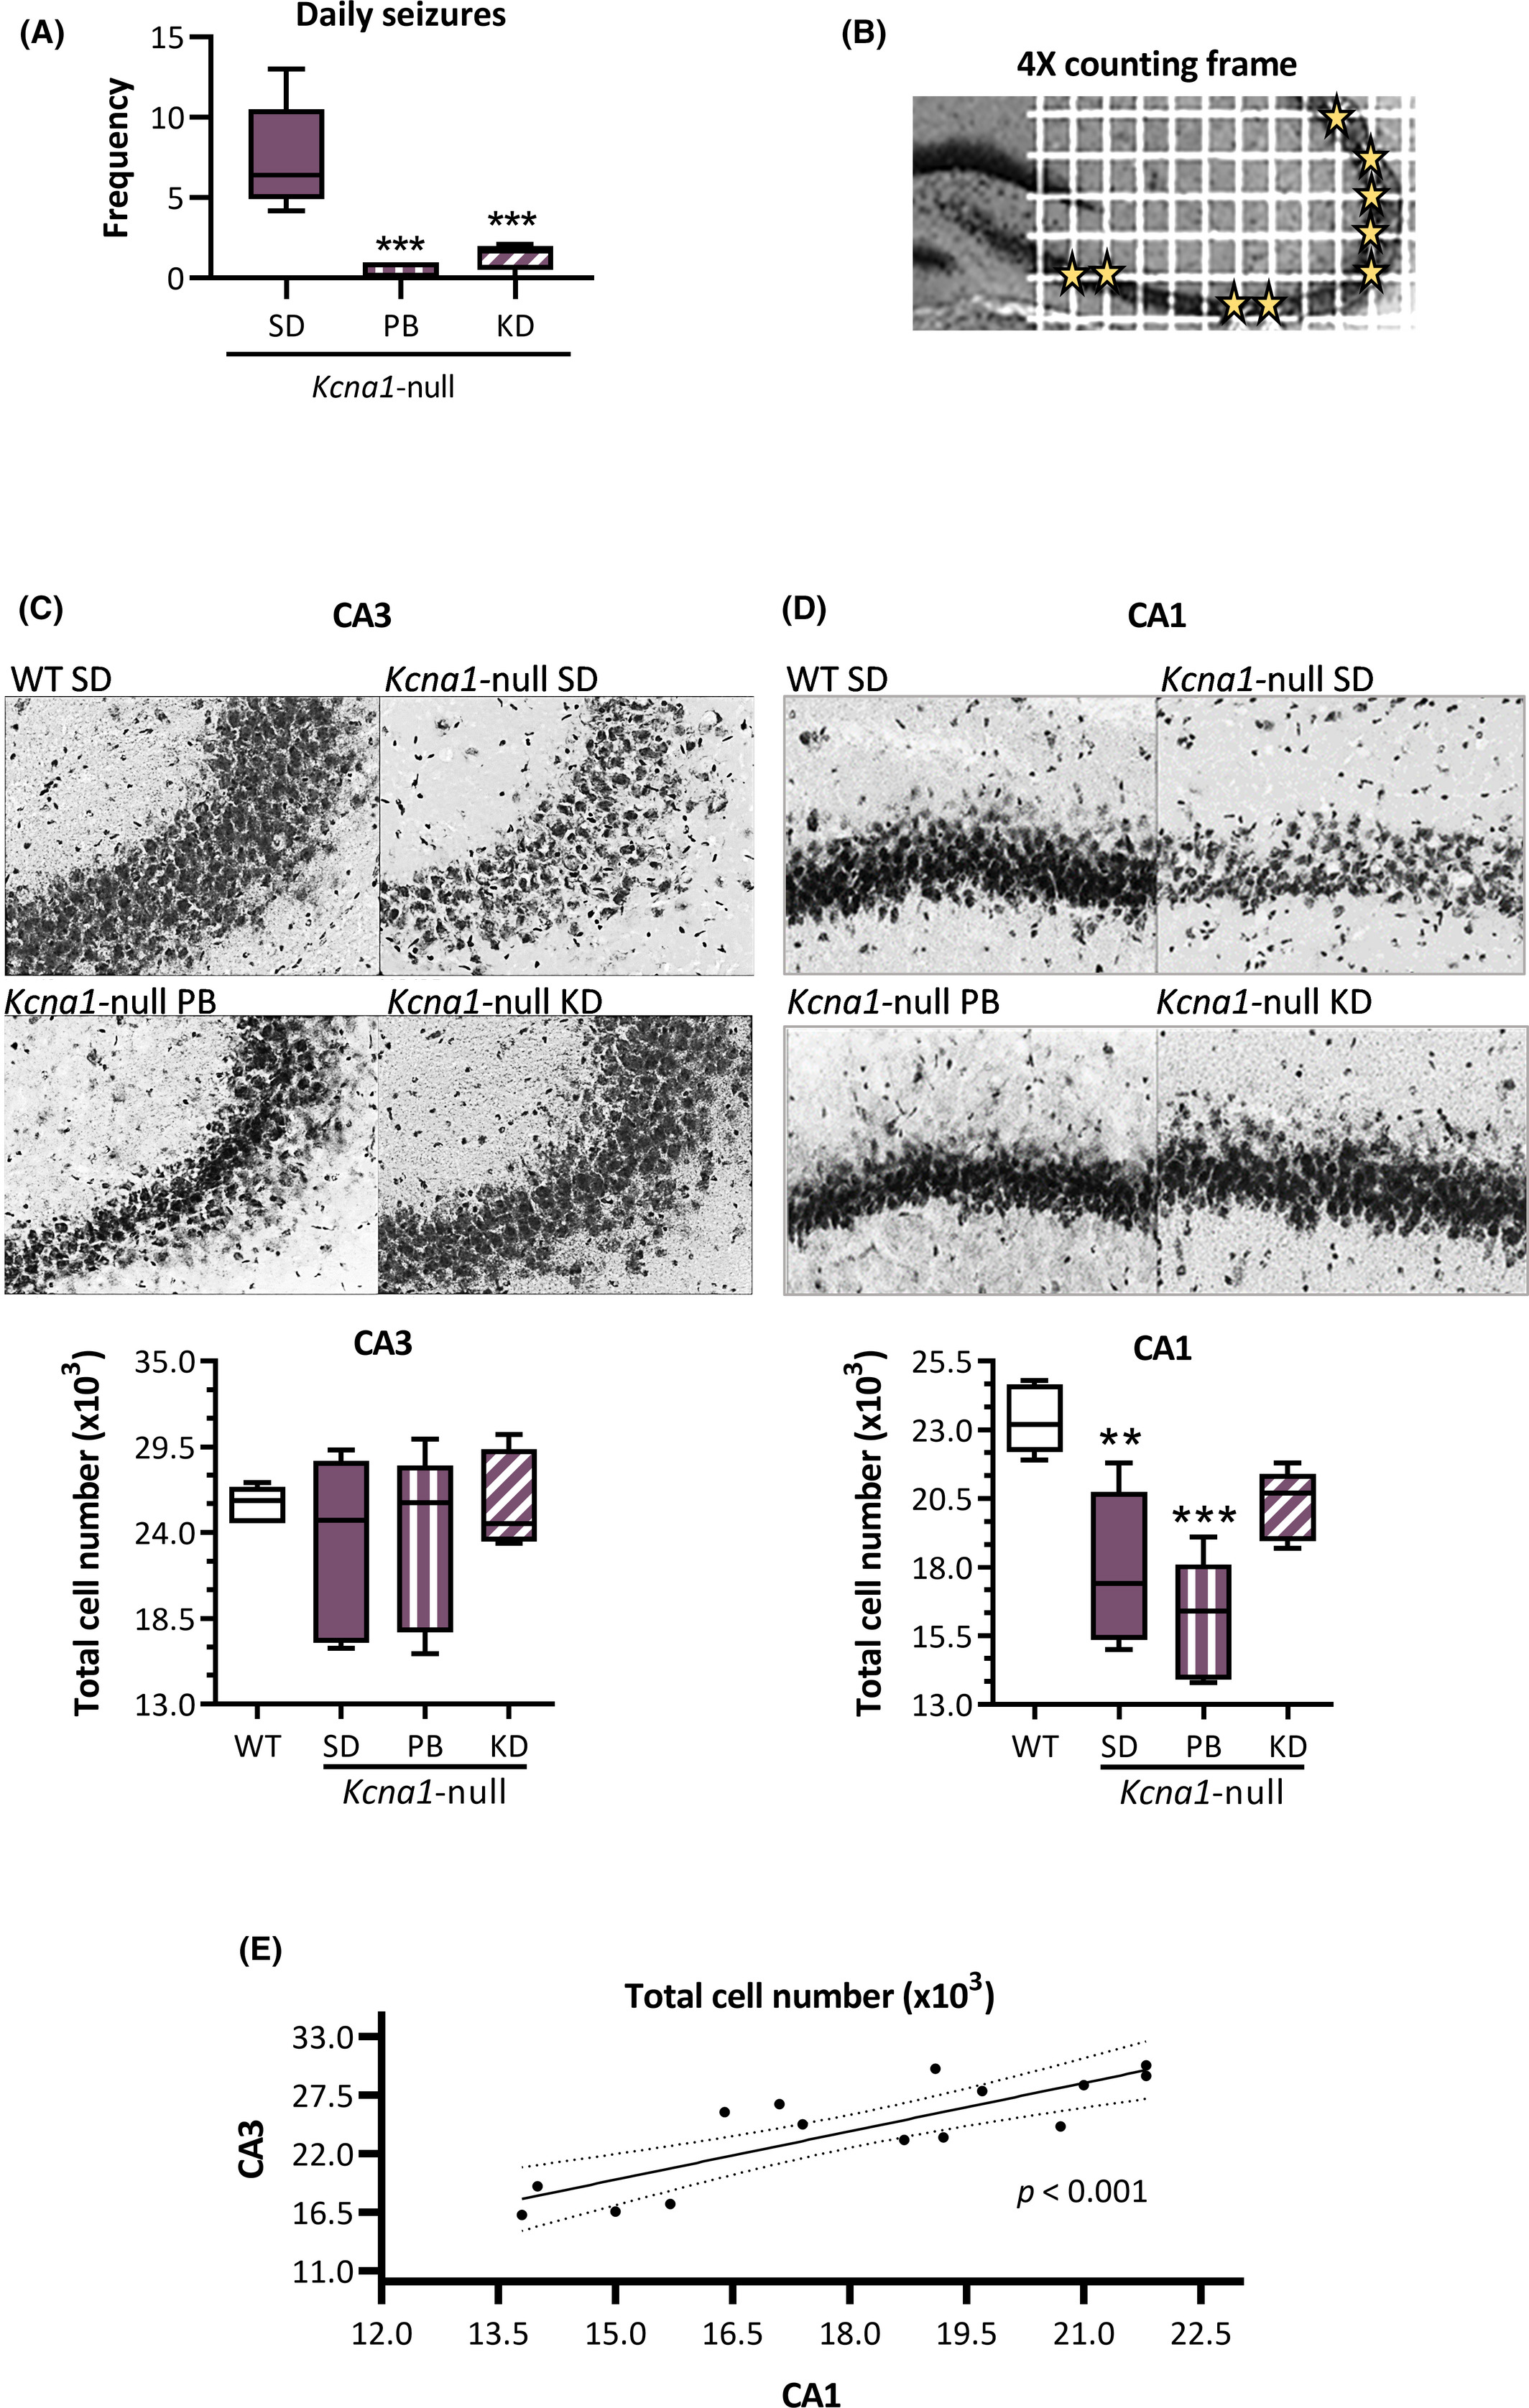 Ketogenic diet-mediated seizure reduction preserves CA1 cell numbers in epileptic Kcna1-null mice: An unbiased stereological assessment -